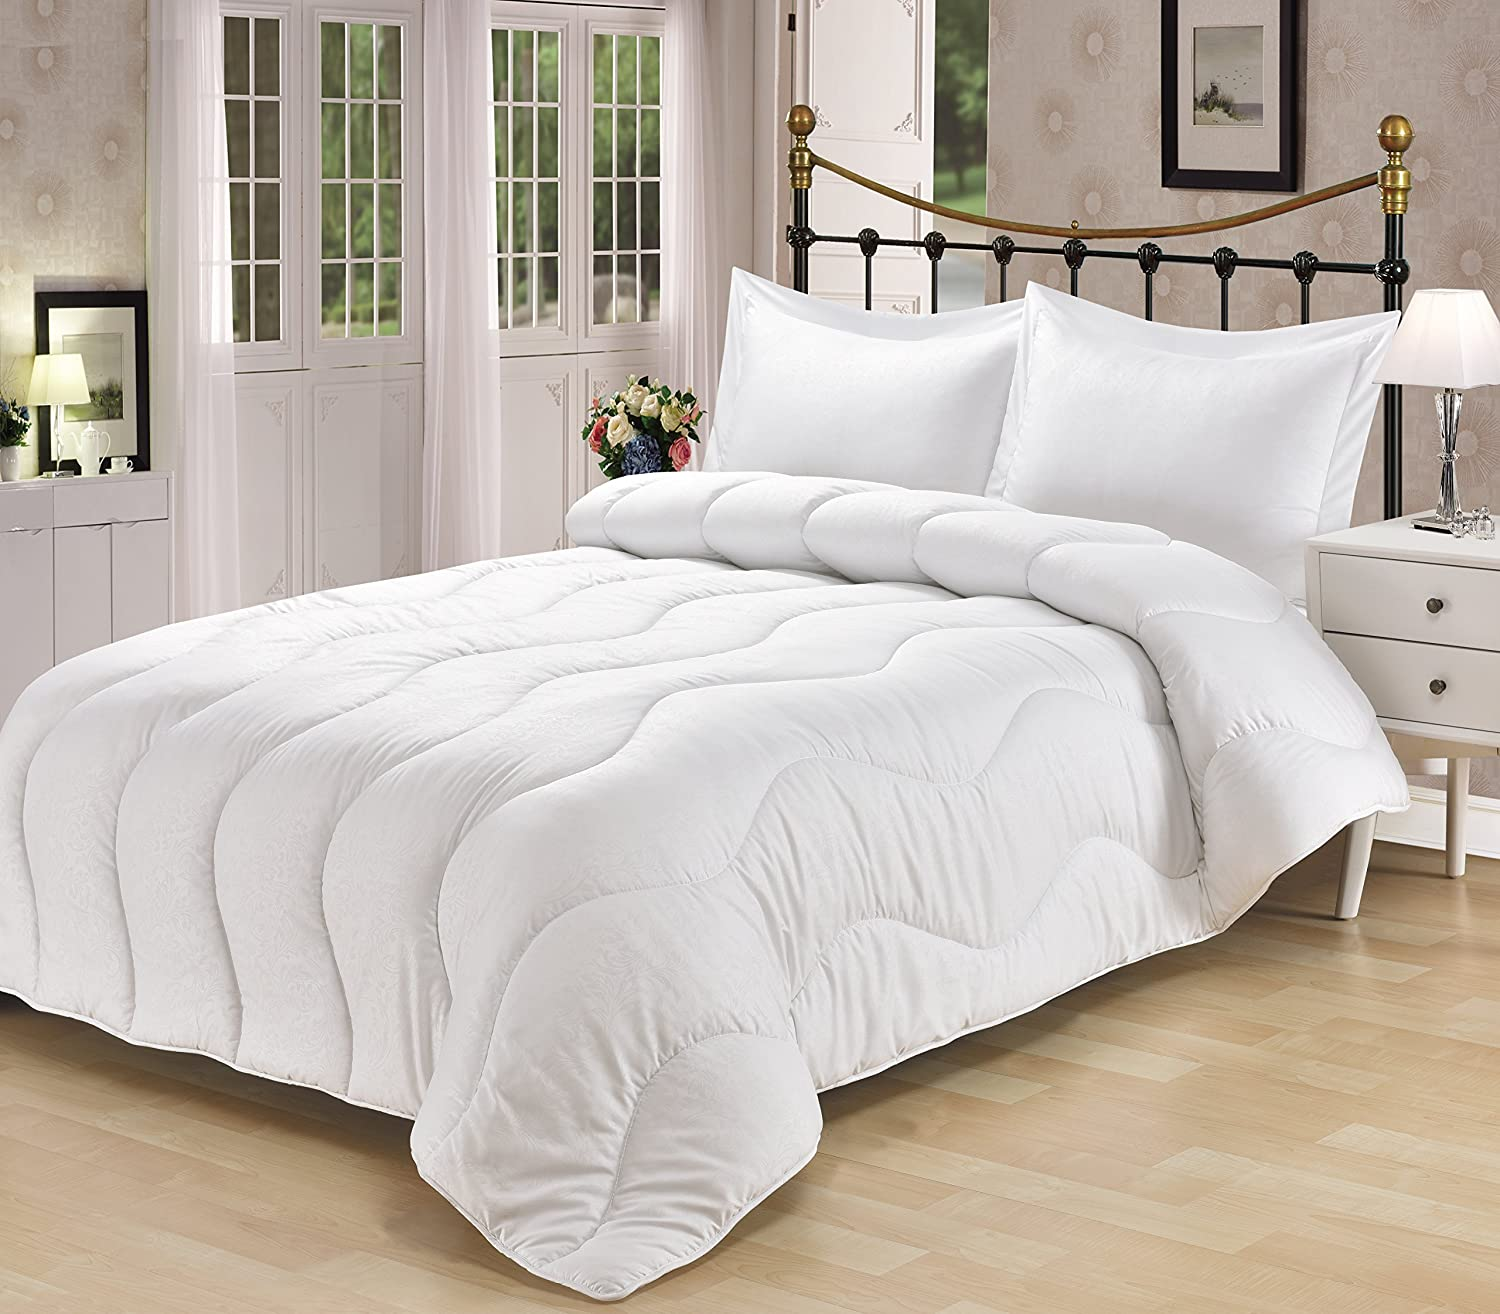 twin full covers quilt cheap ruffle duvets comforters set and striped doona double green teal cover of cool white barbara king colourful comforter single dark quality size black ac barry ombre bedroom cream modern bedding do waterfall duvet ruched amazon online queen poetical red next sets